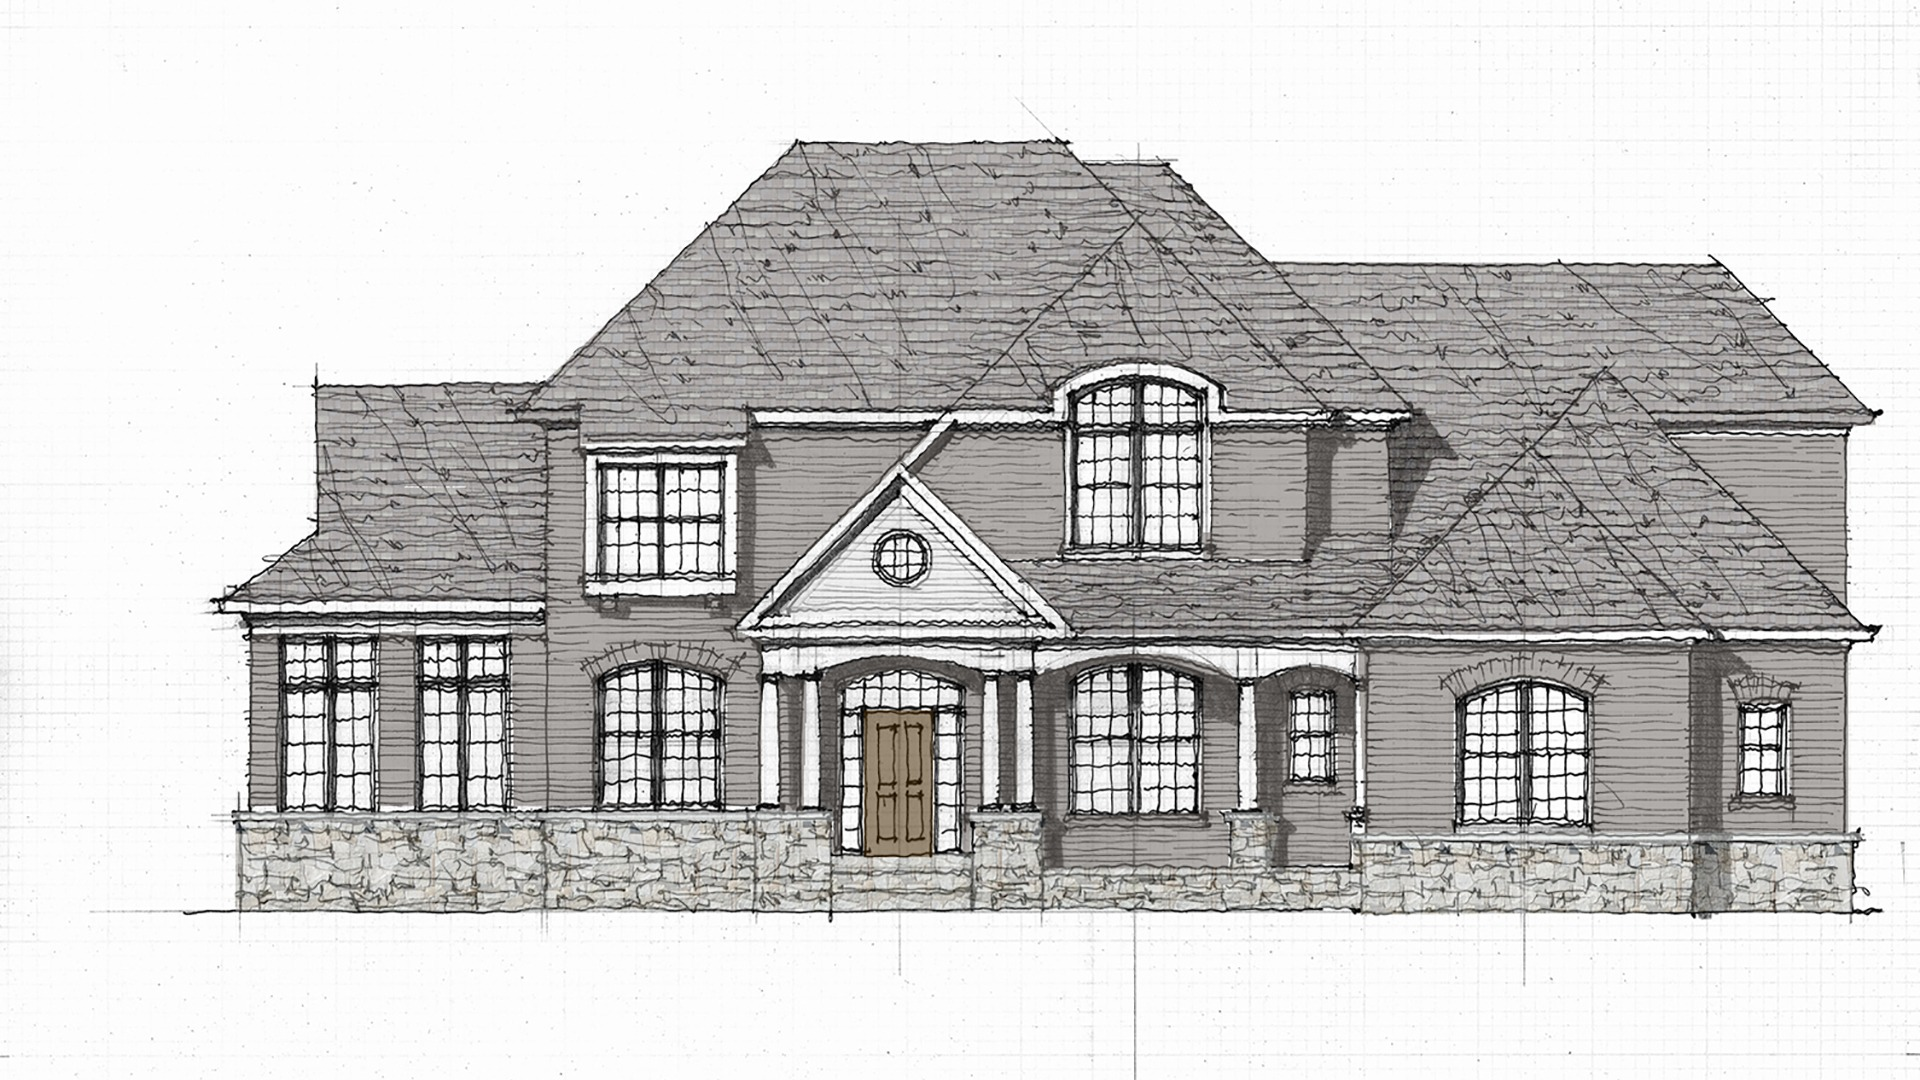 Artist's rendering of a paint/color concept for the new Grayson elevation, being considered for Vale Crest on Homesite 5.